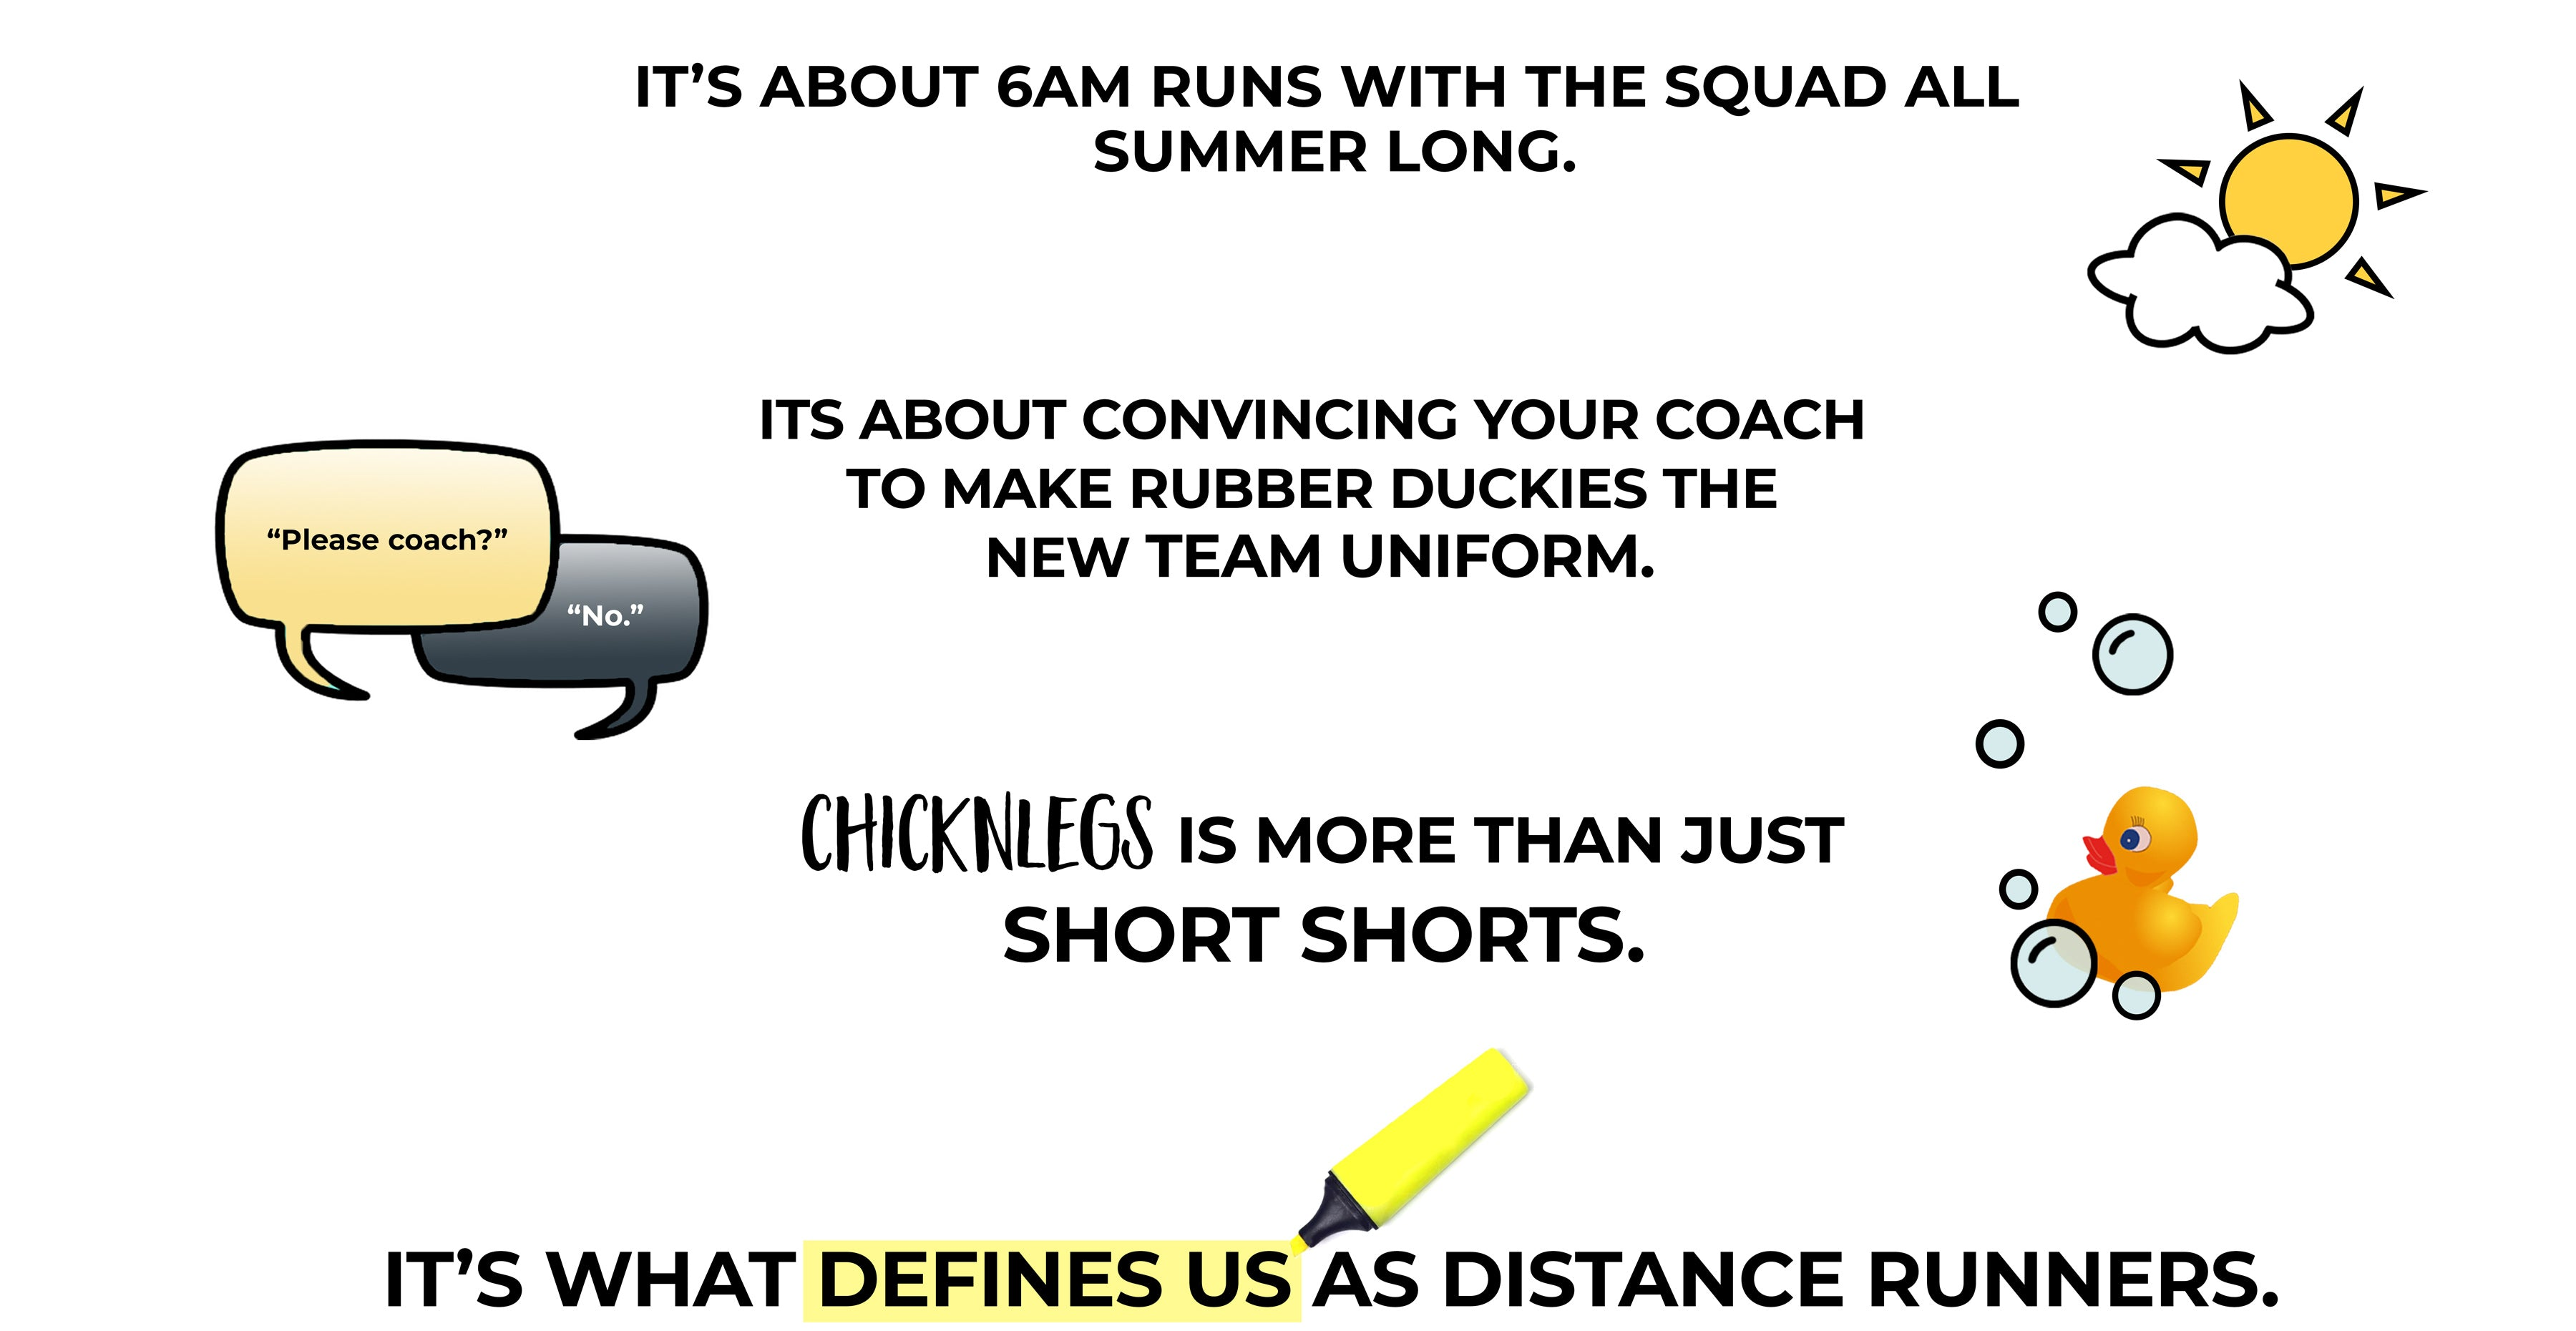 It's about 6Am runs with the squad all summer long. ChicknLegs is what defines us as distance runners.